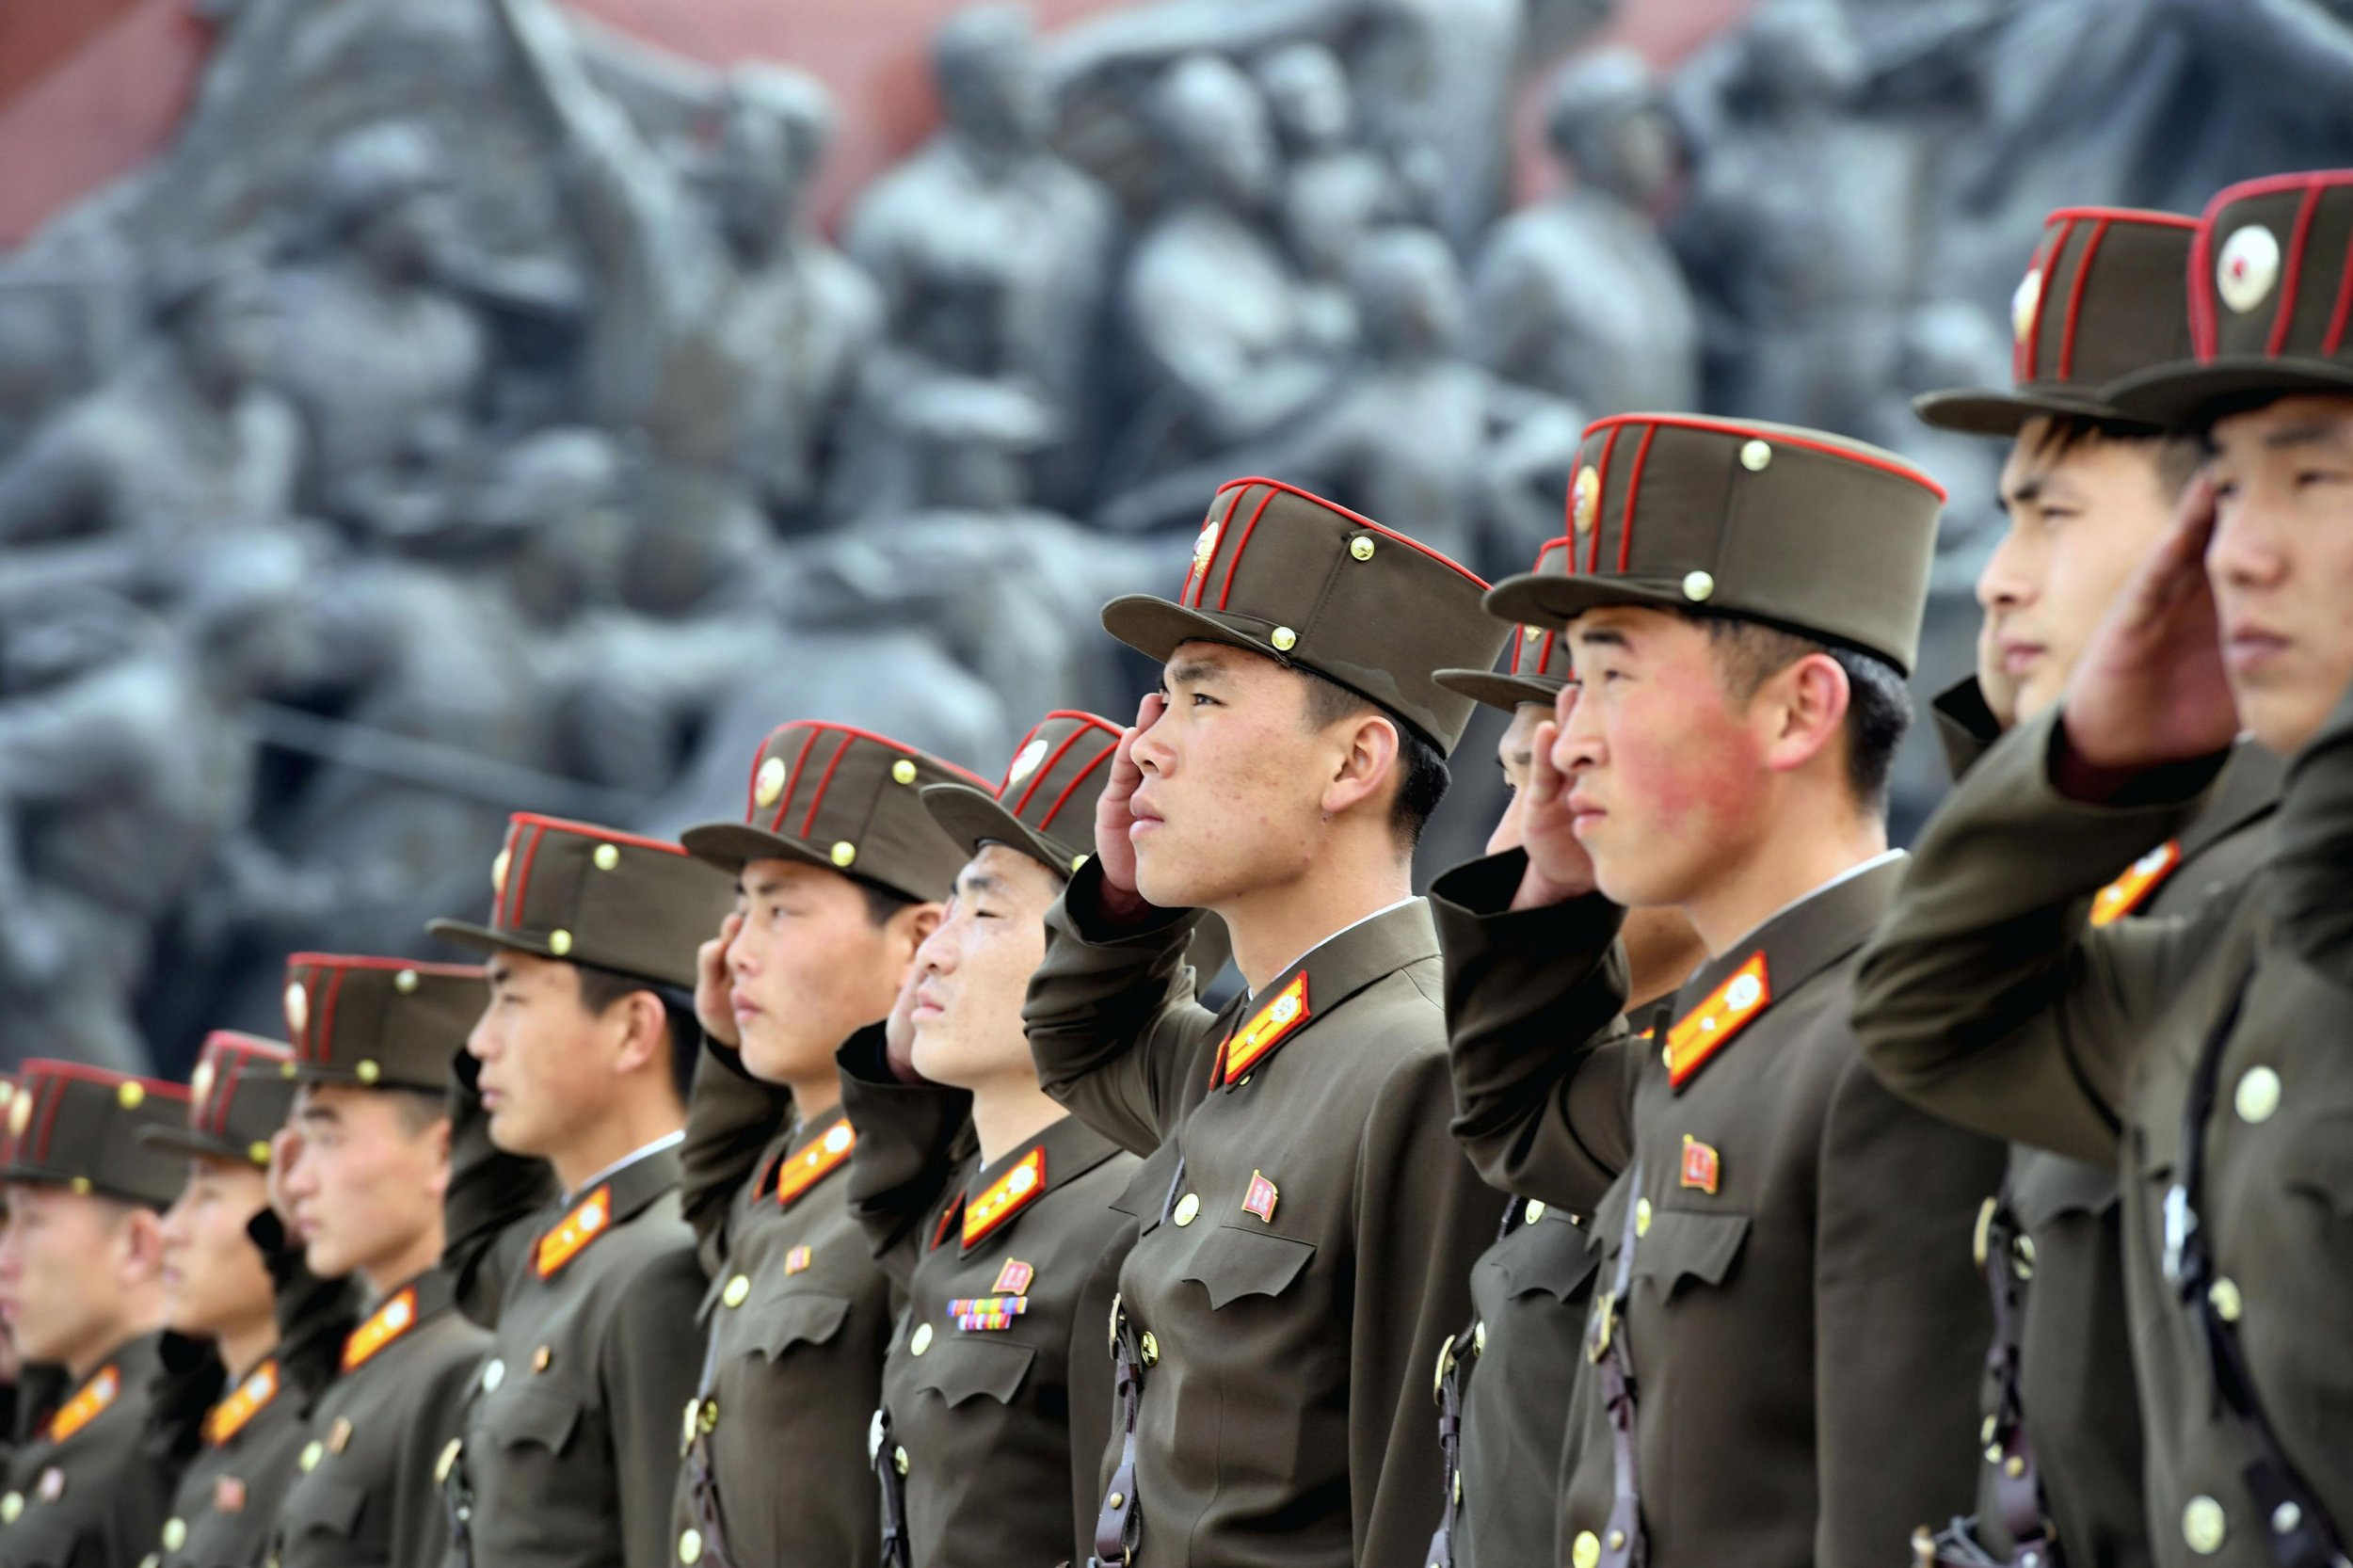 NK soldiers